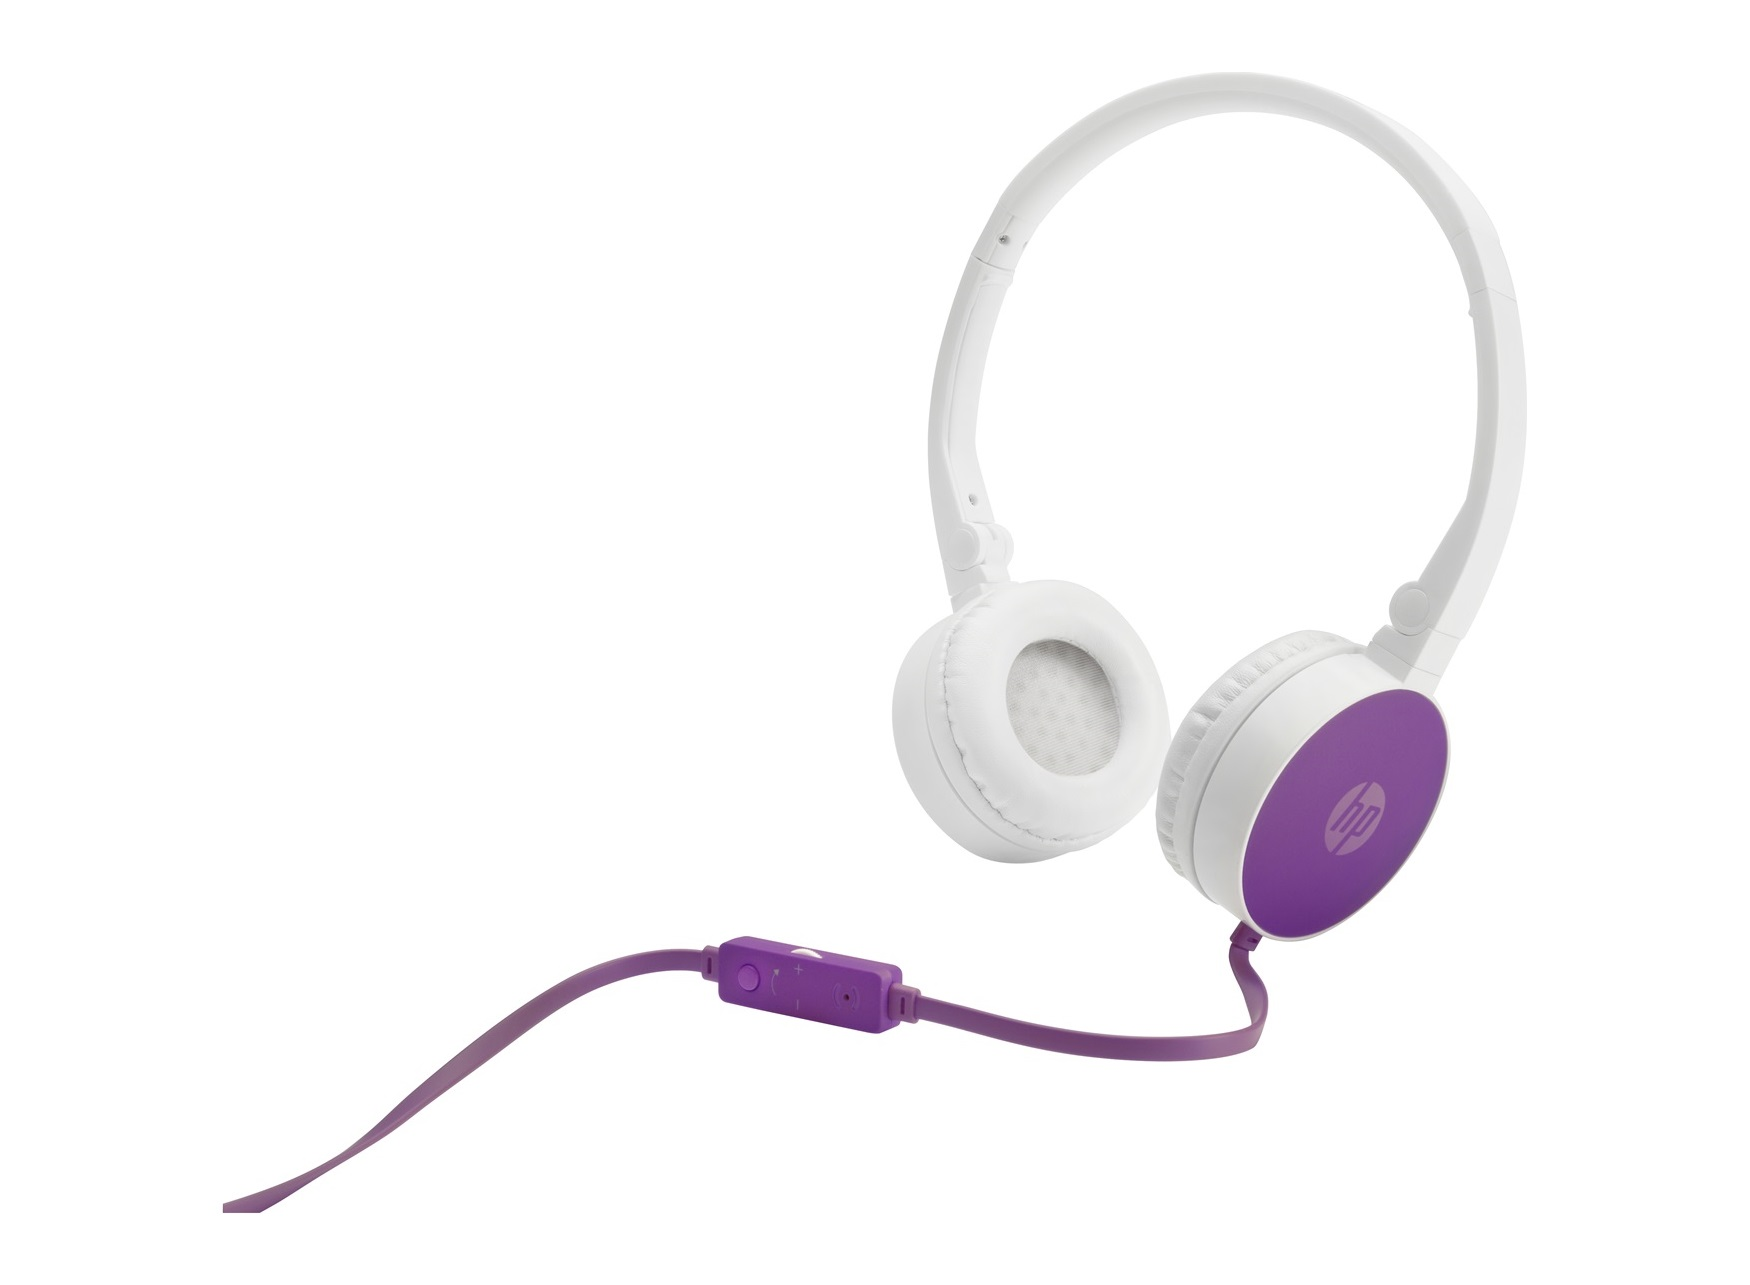 HP H2800 Purple On-Ear Stereo Headphones F6J06AA (κλήσεις & μουσική με Remote + Volume Control)